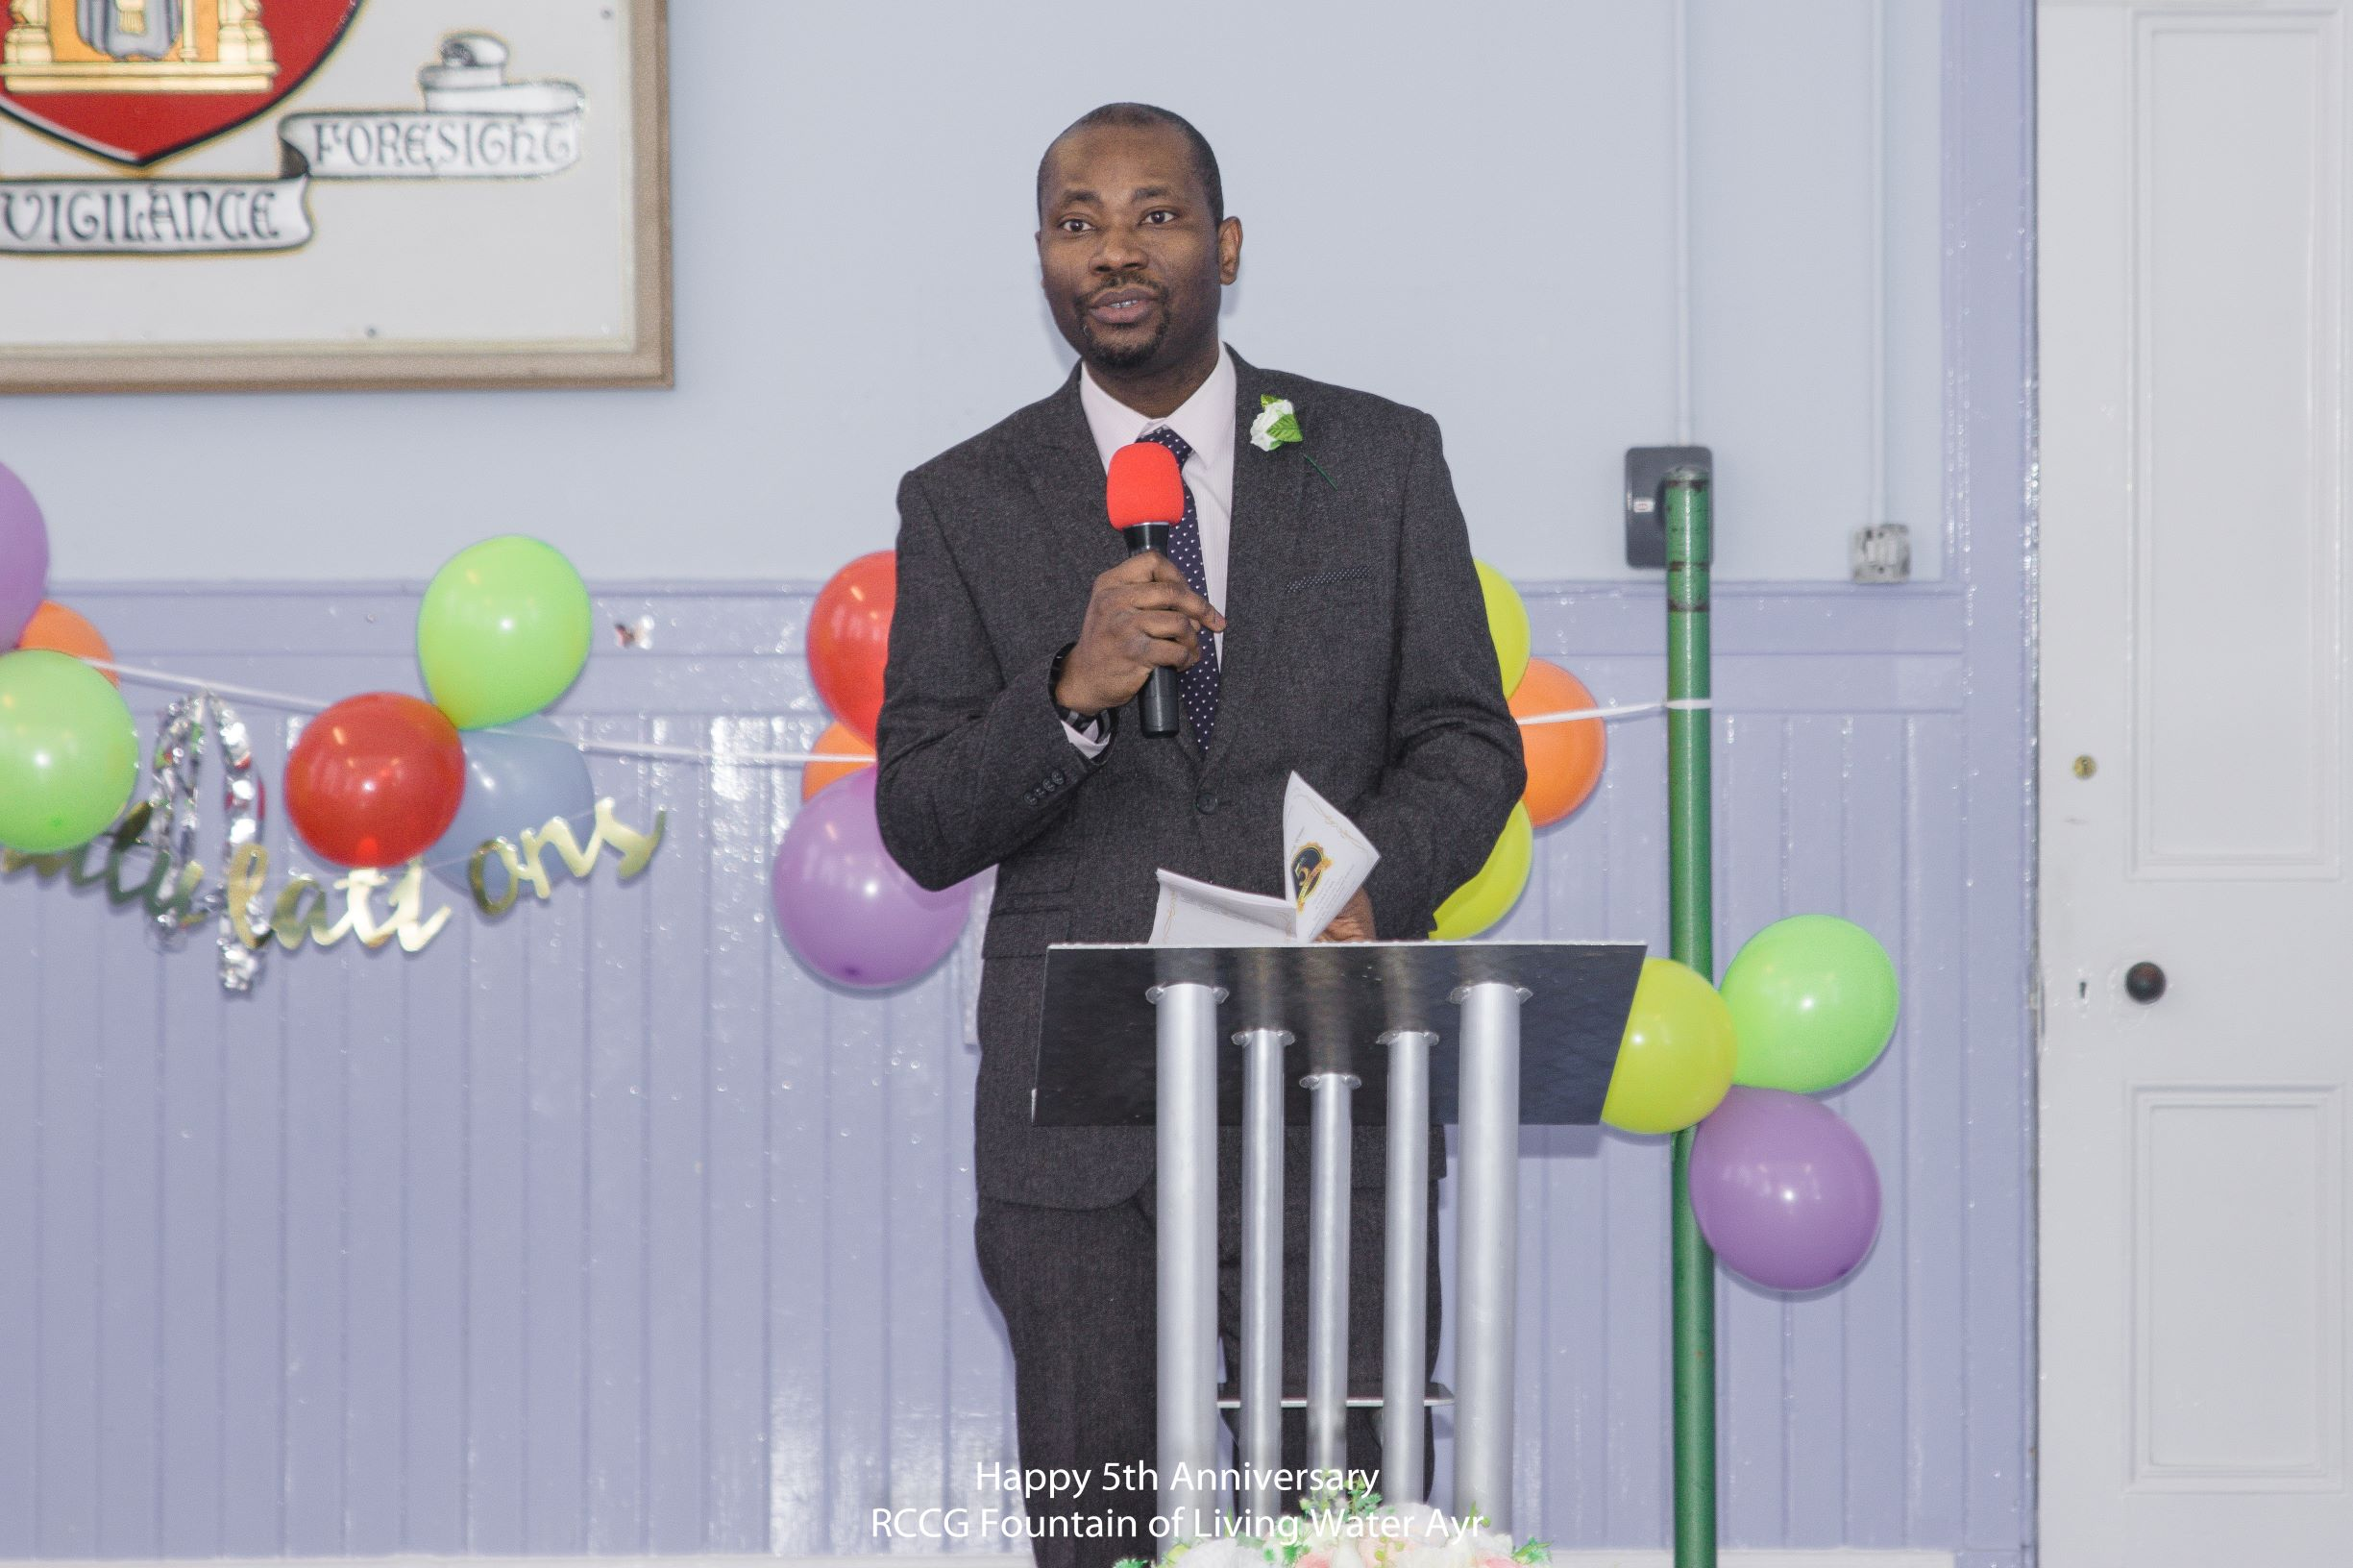 Pastor Yinka addressing the people at the service